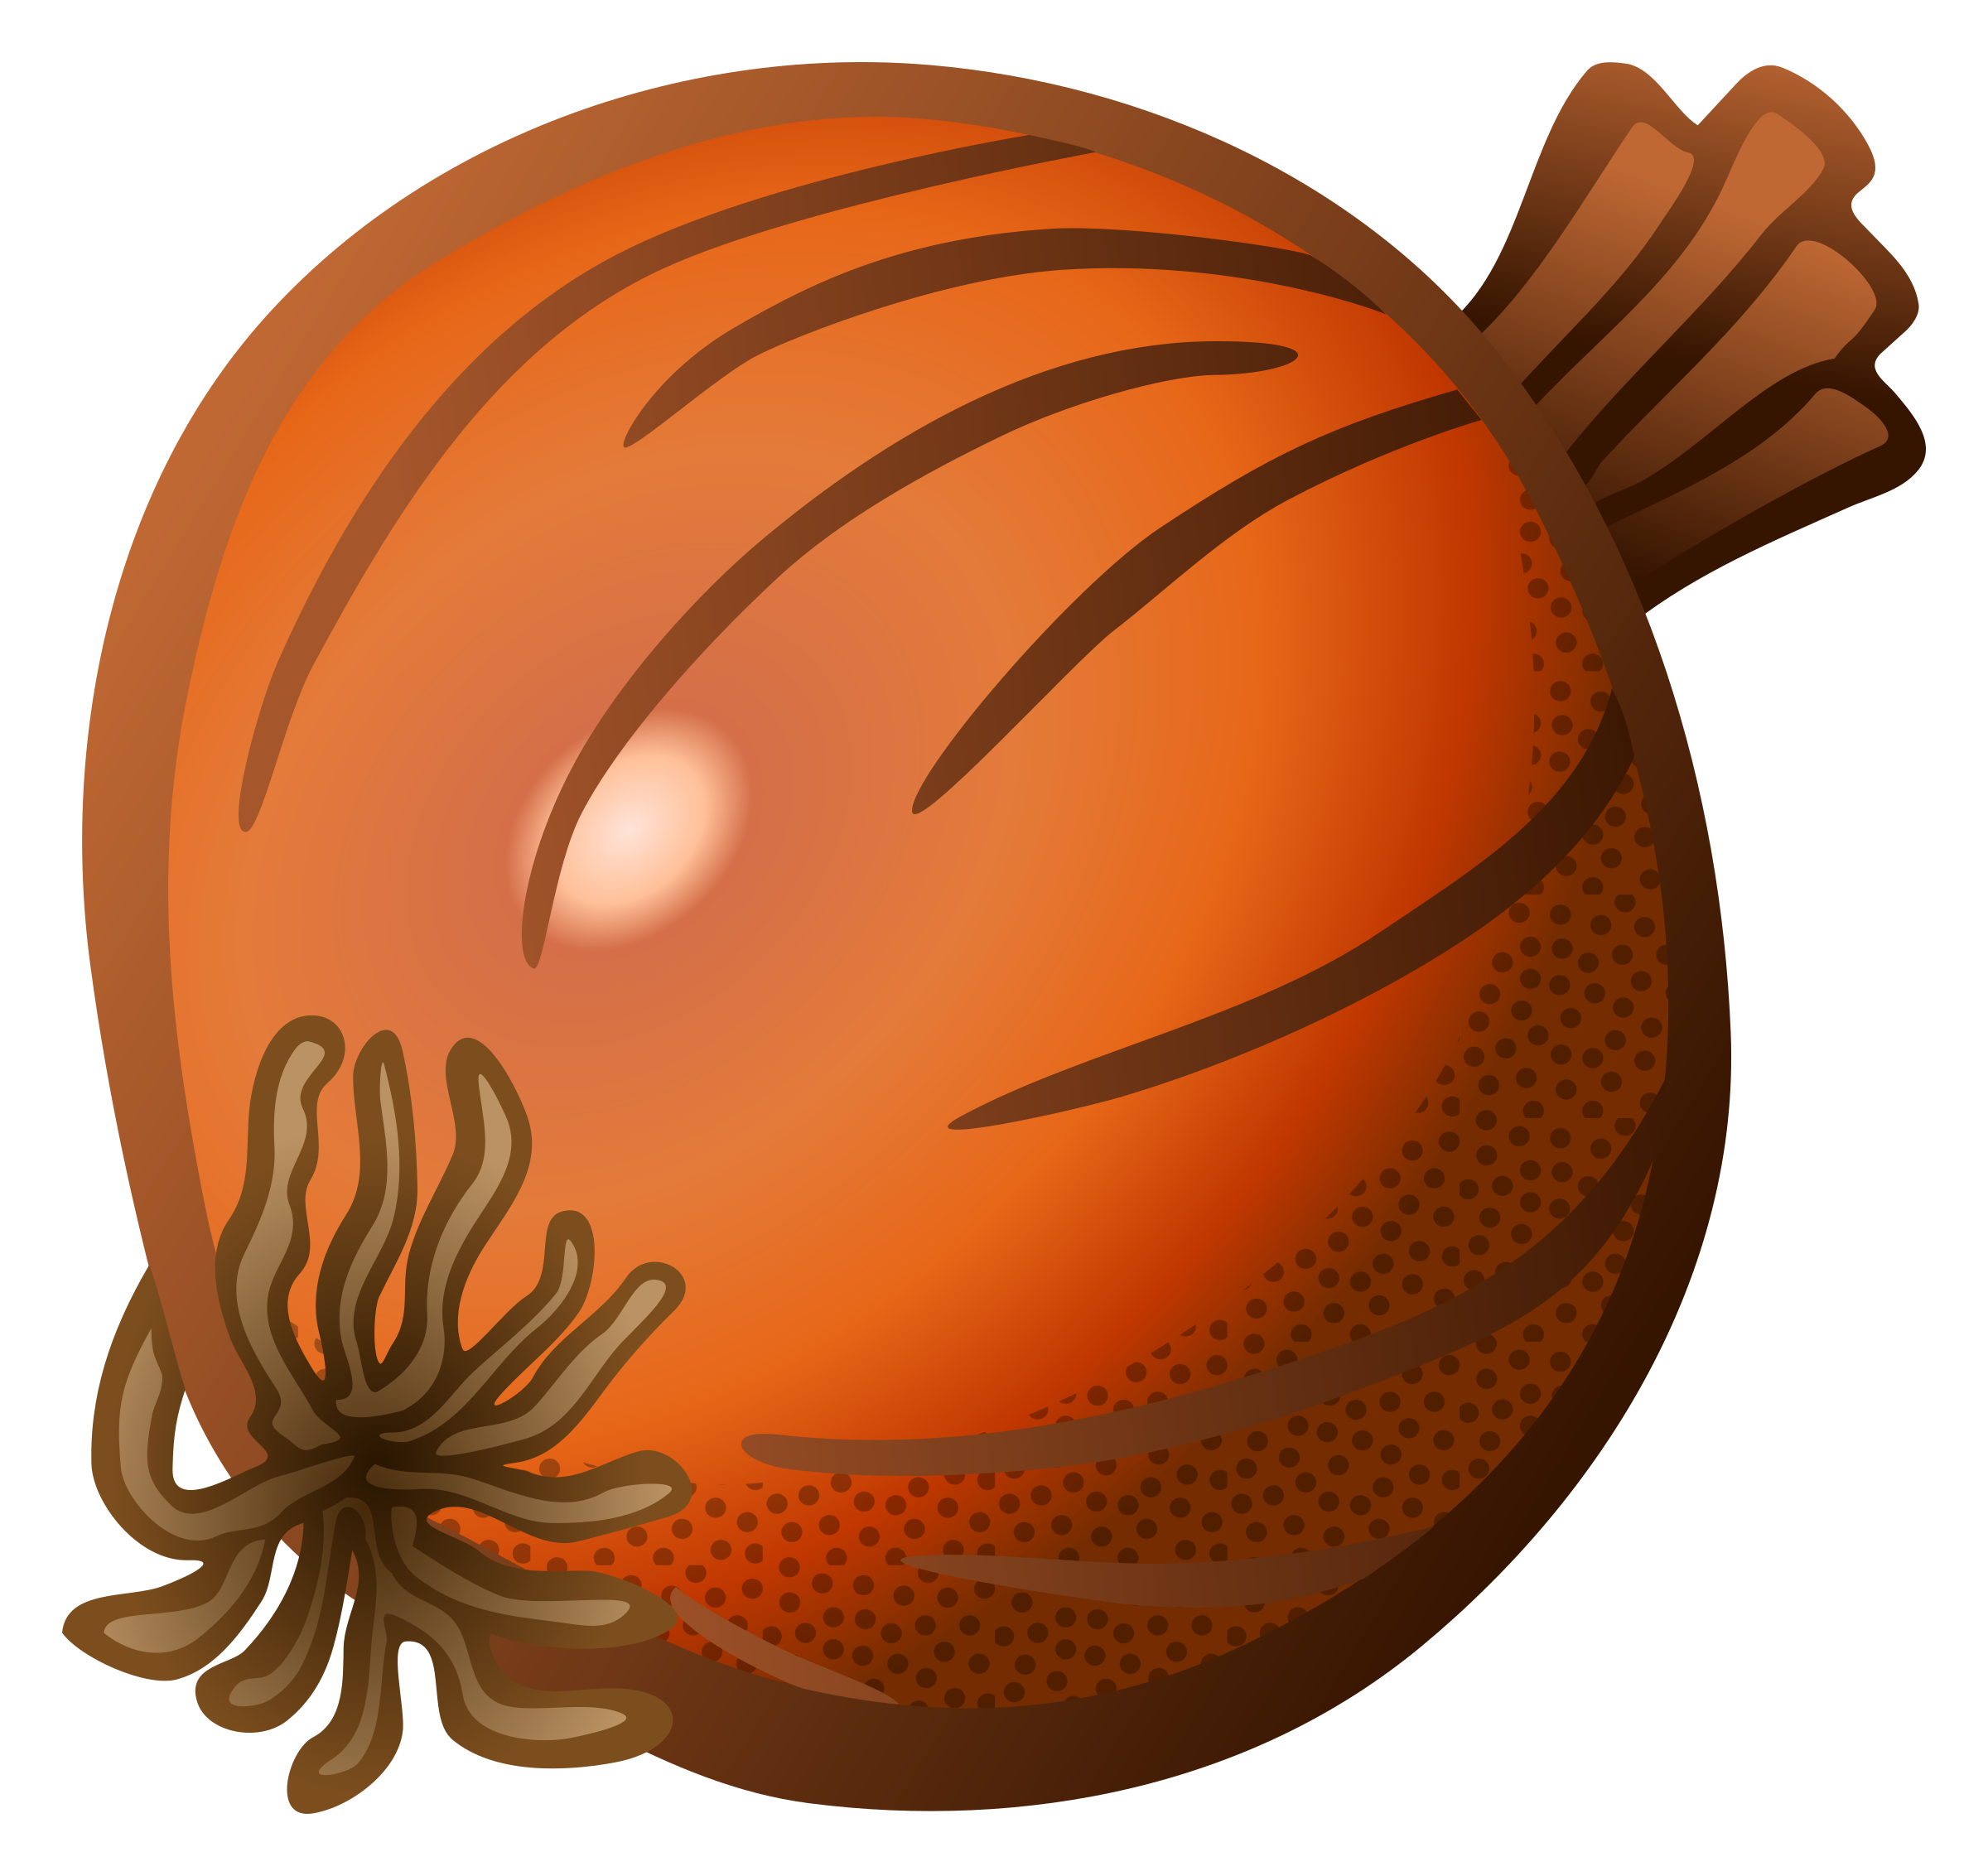 Onion Clipart image #38754